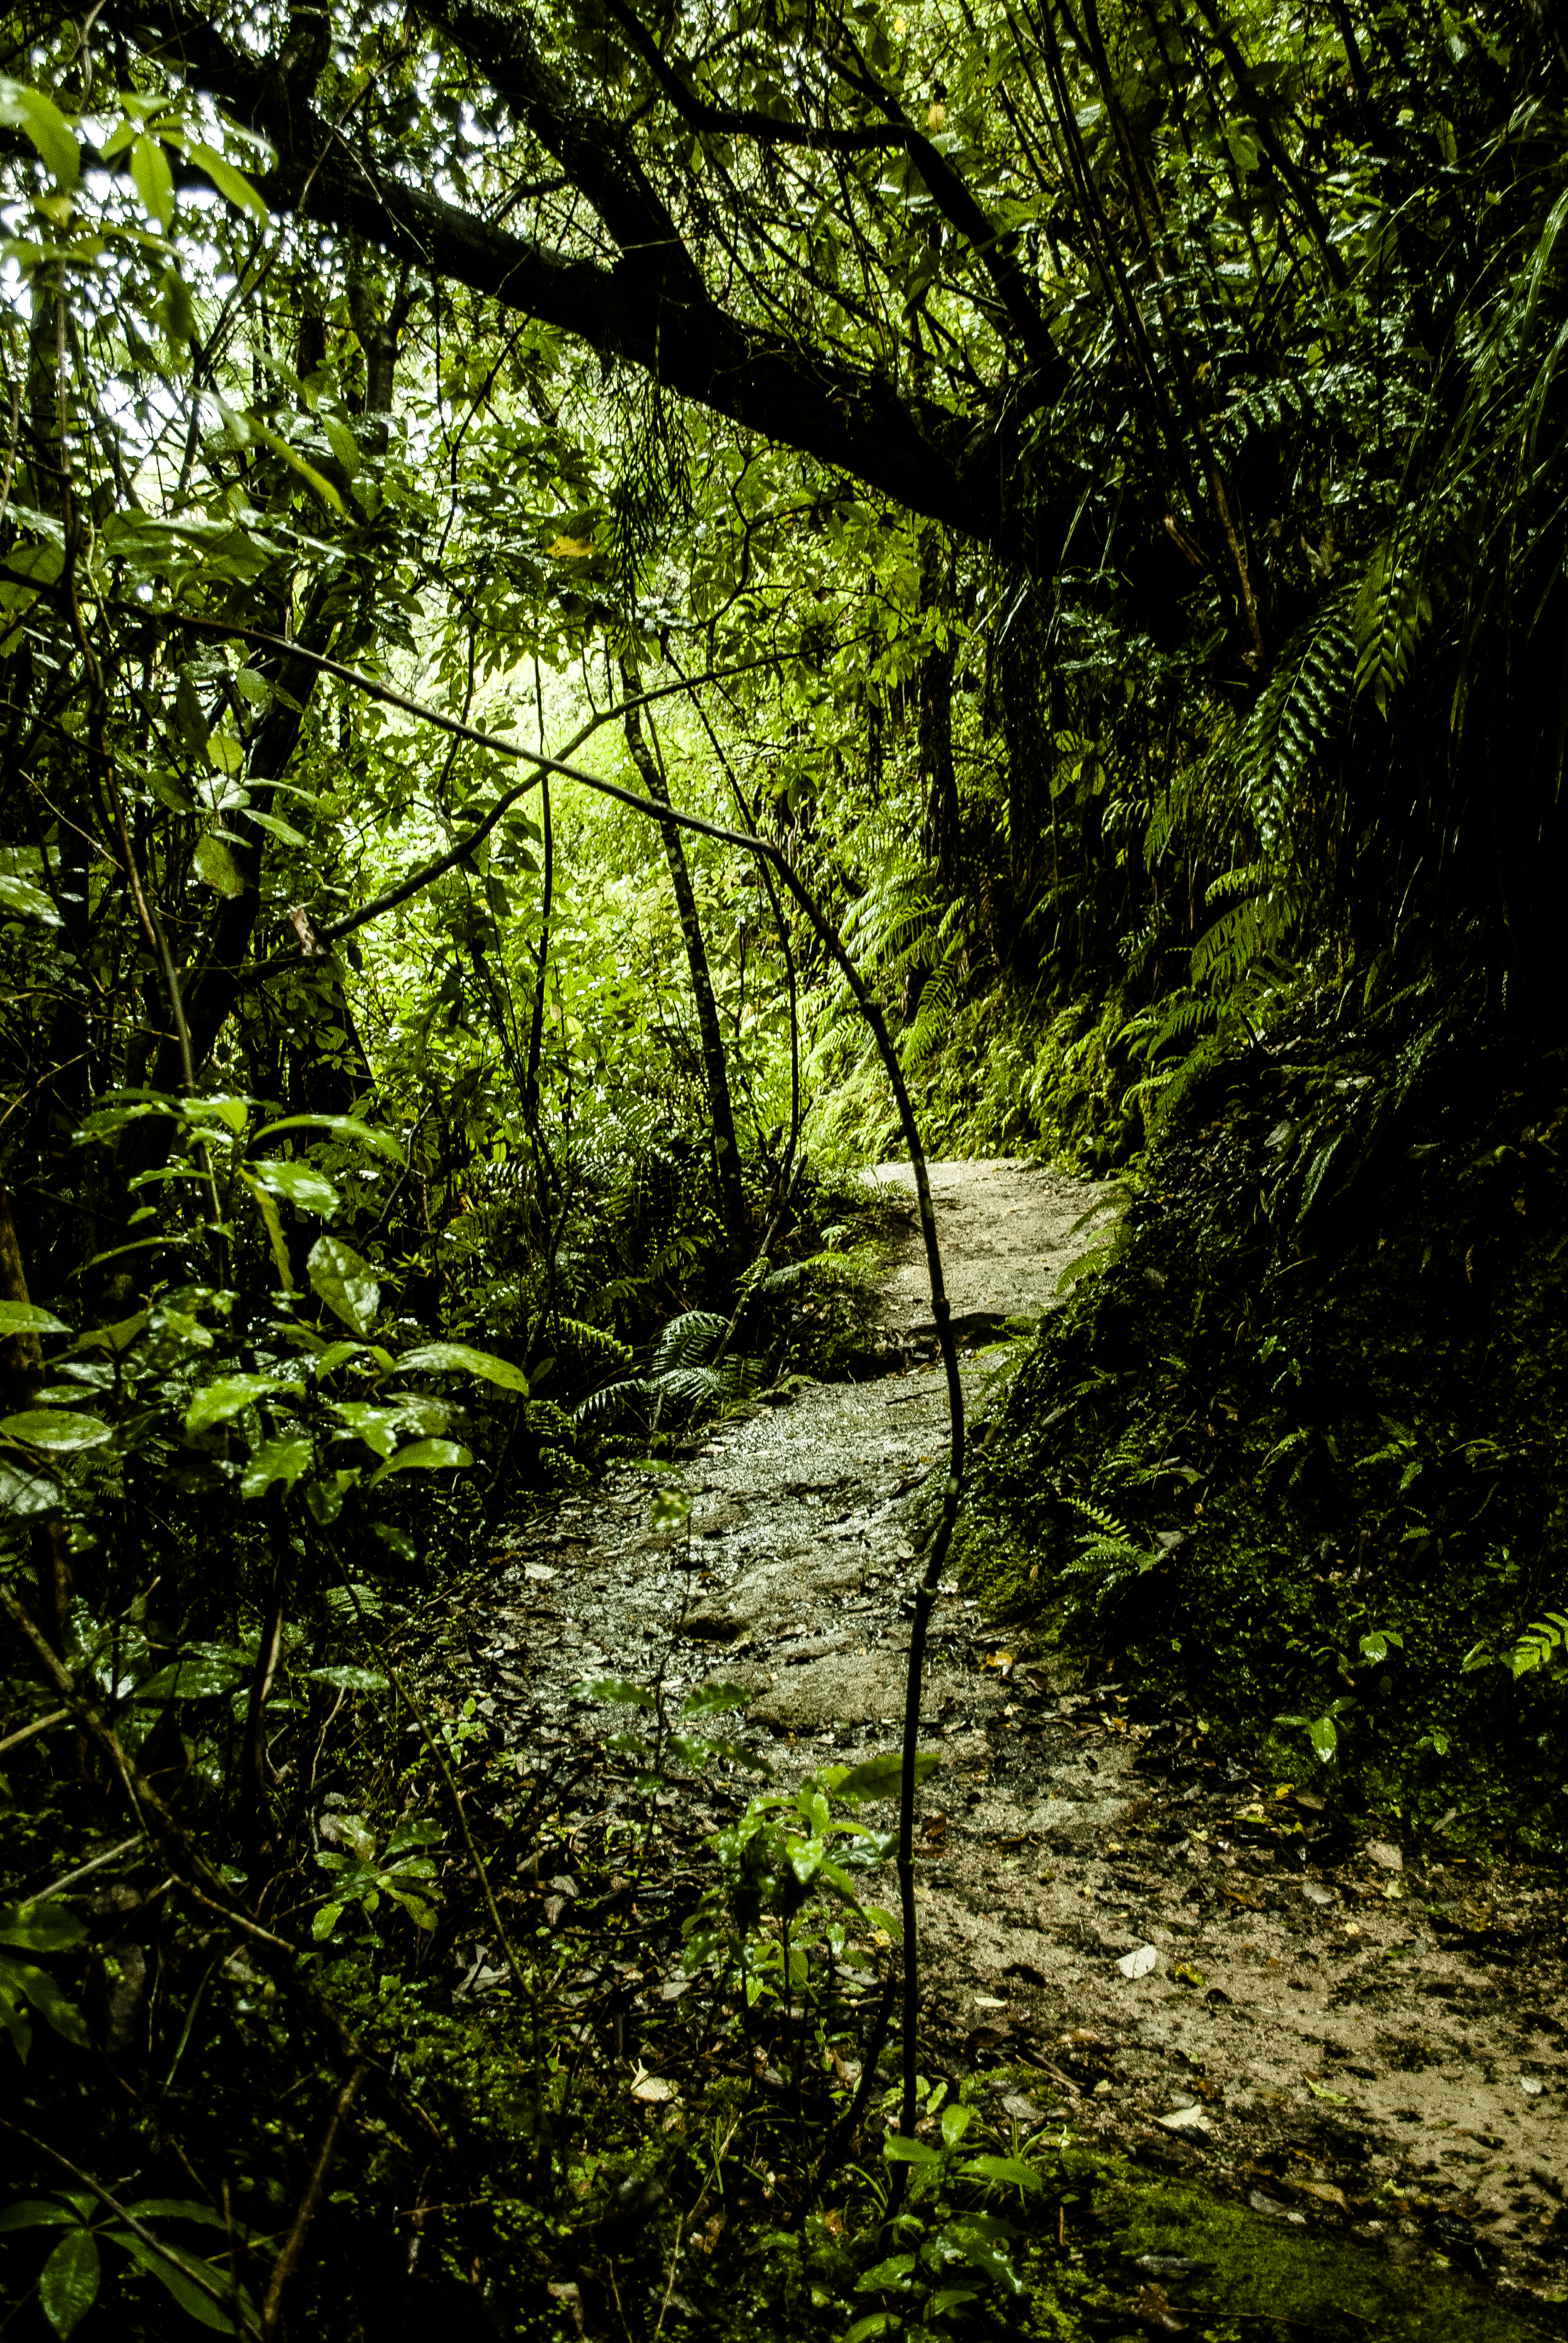 101195 download wallpaper Nature, Grass, Path, Jungle screensavers and pictures for free